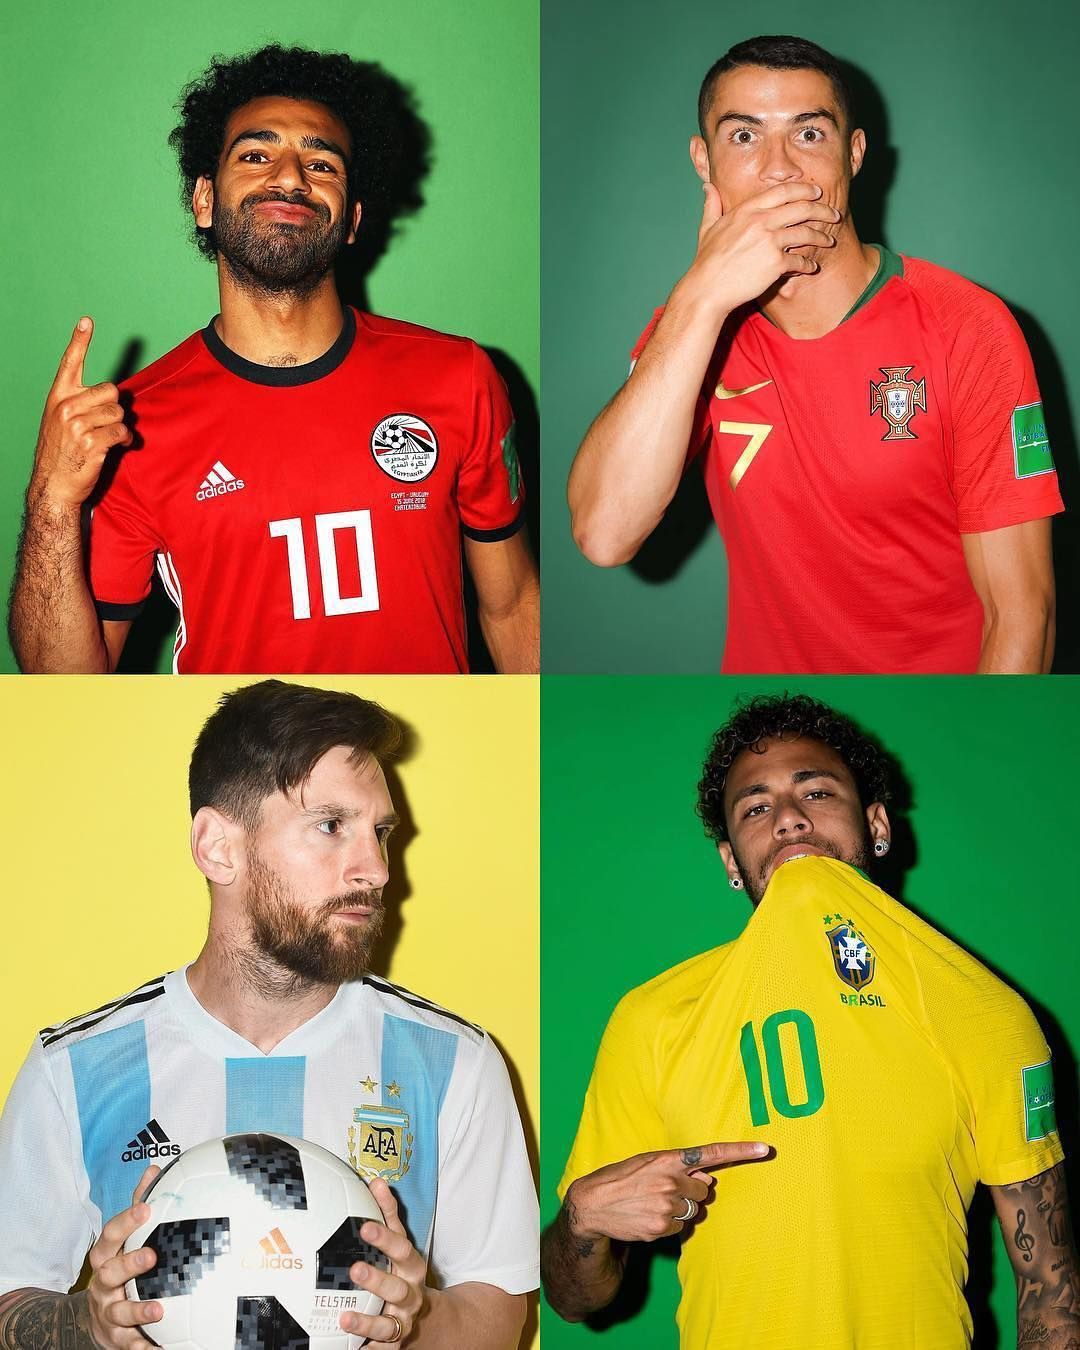 Whos Gonna Be The At The World Cup Salah Ronaldo Messi Neymar Worldcup Russia2018 2018worldcup Camisa Selecao Brasileira Futebol Soccer Lionel Messi